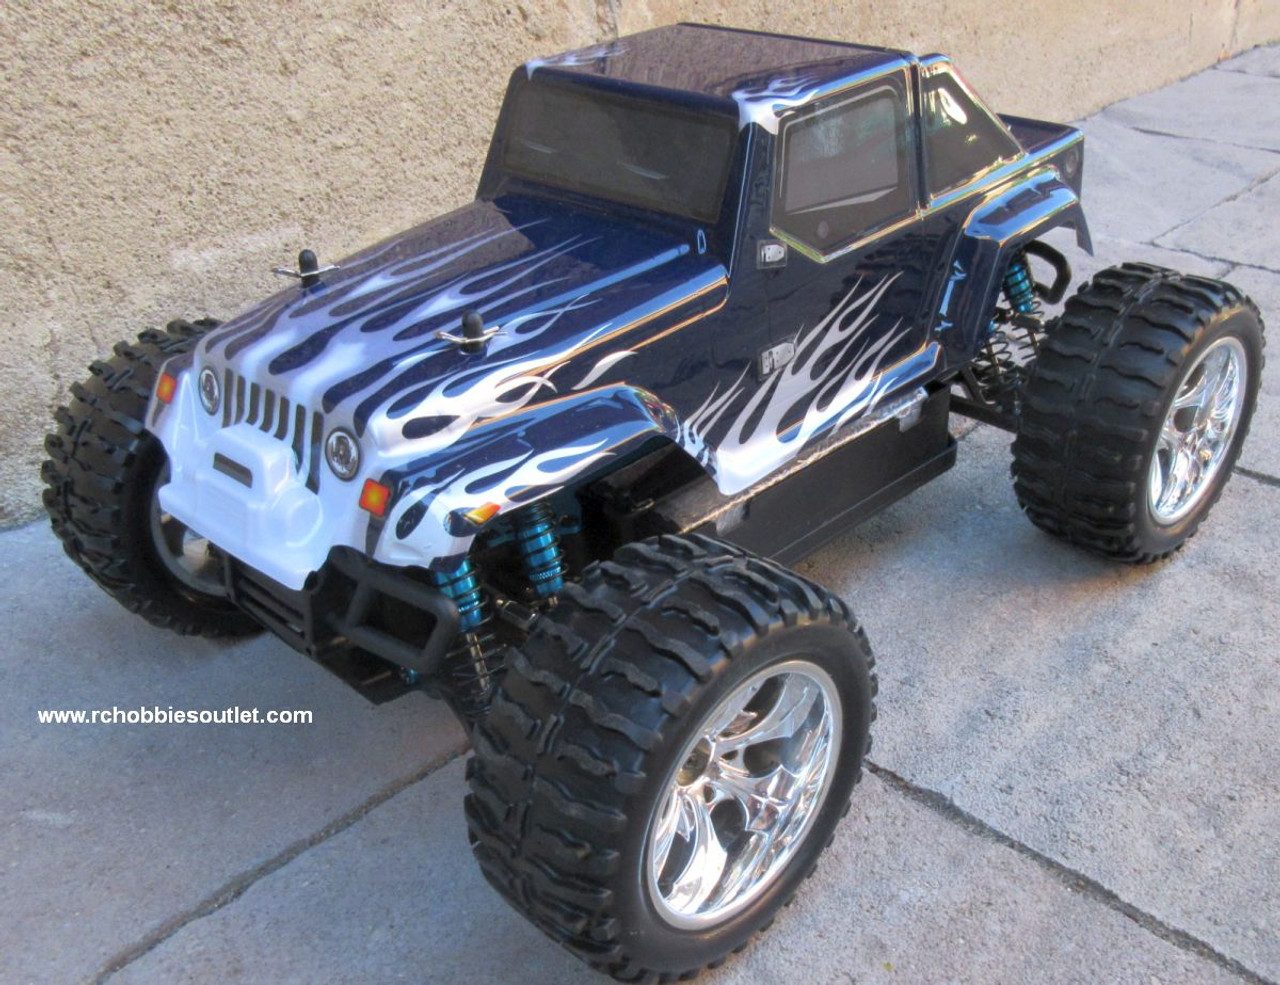 RC Brushless Electric Truck 1/10 Scale  PRO LIPO 2.4G 4WD  12111